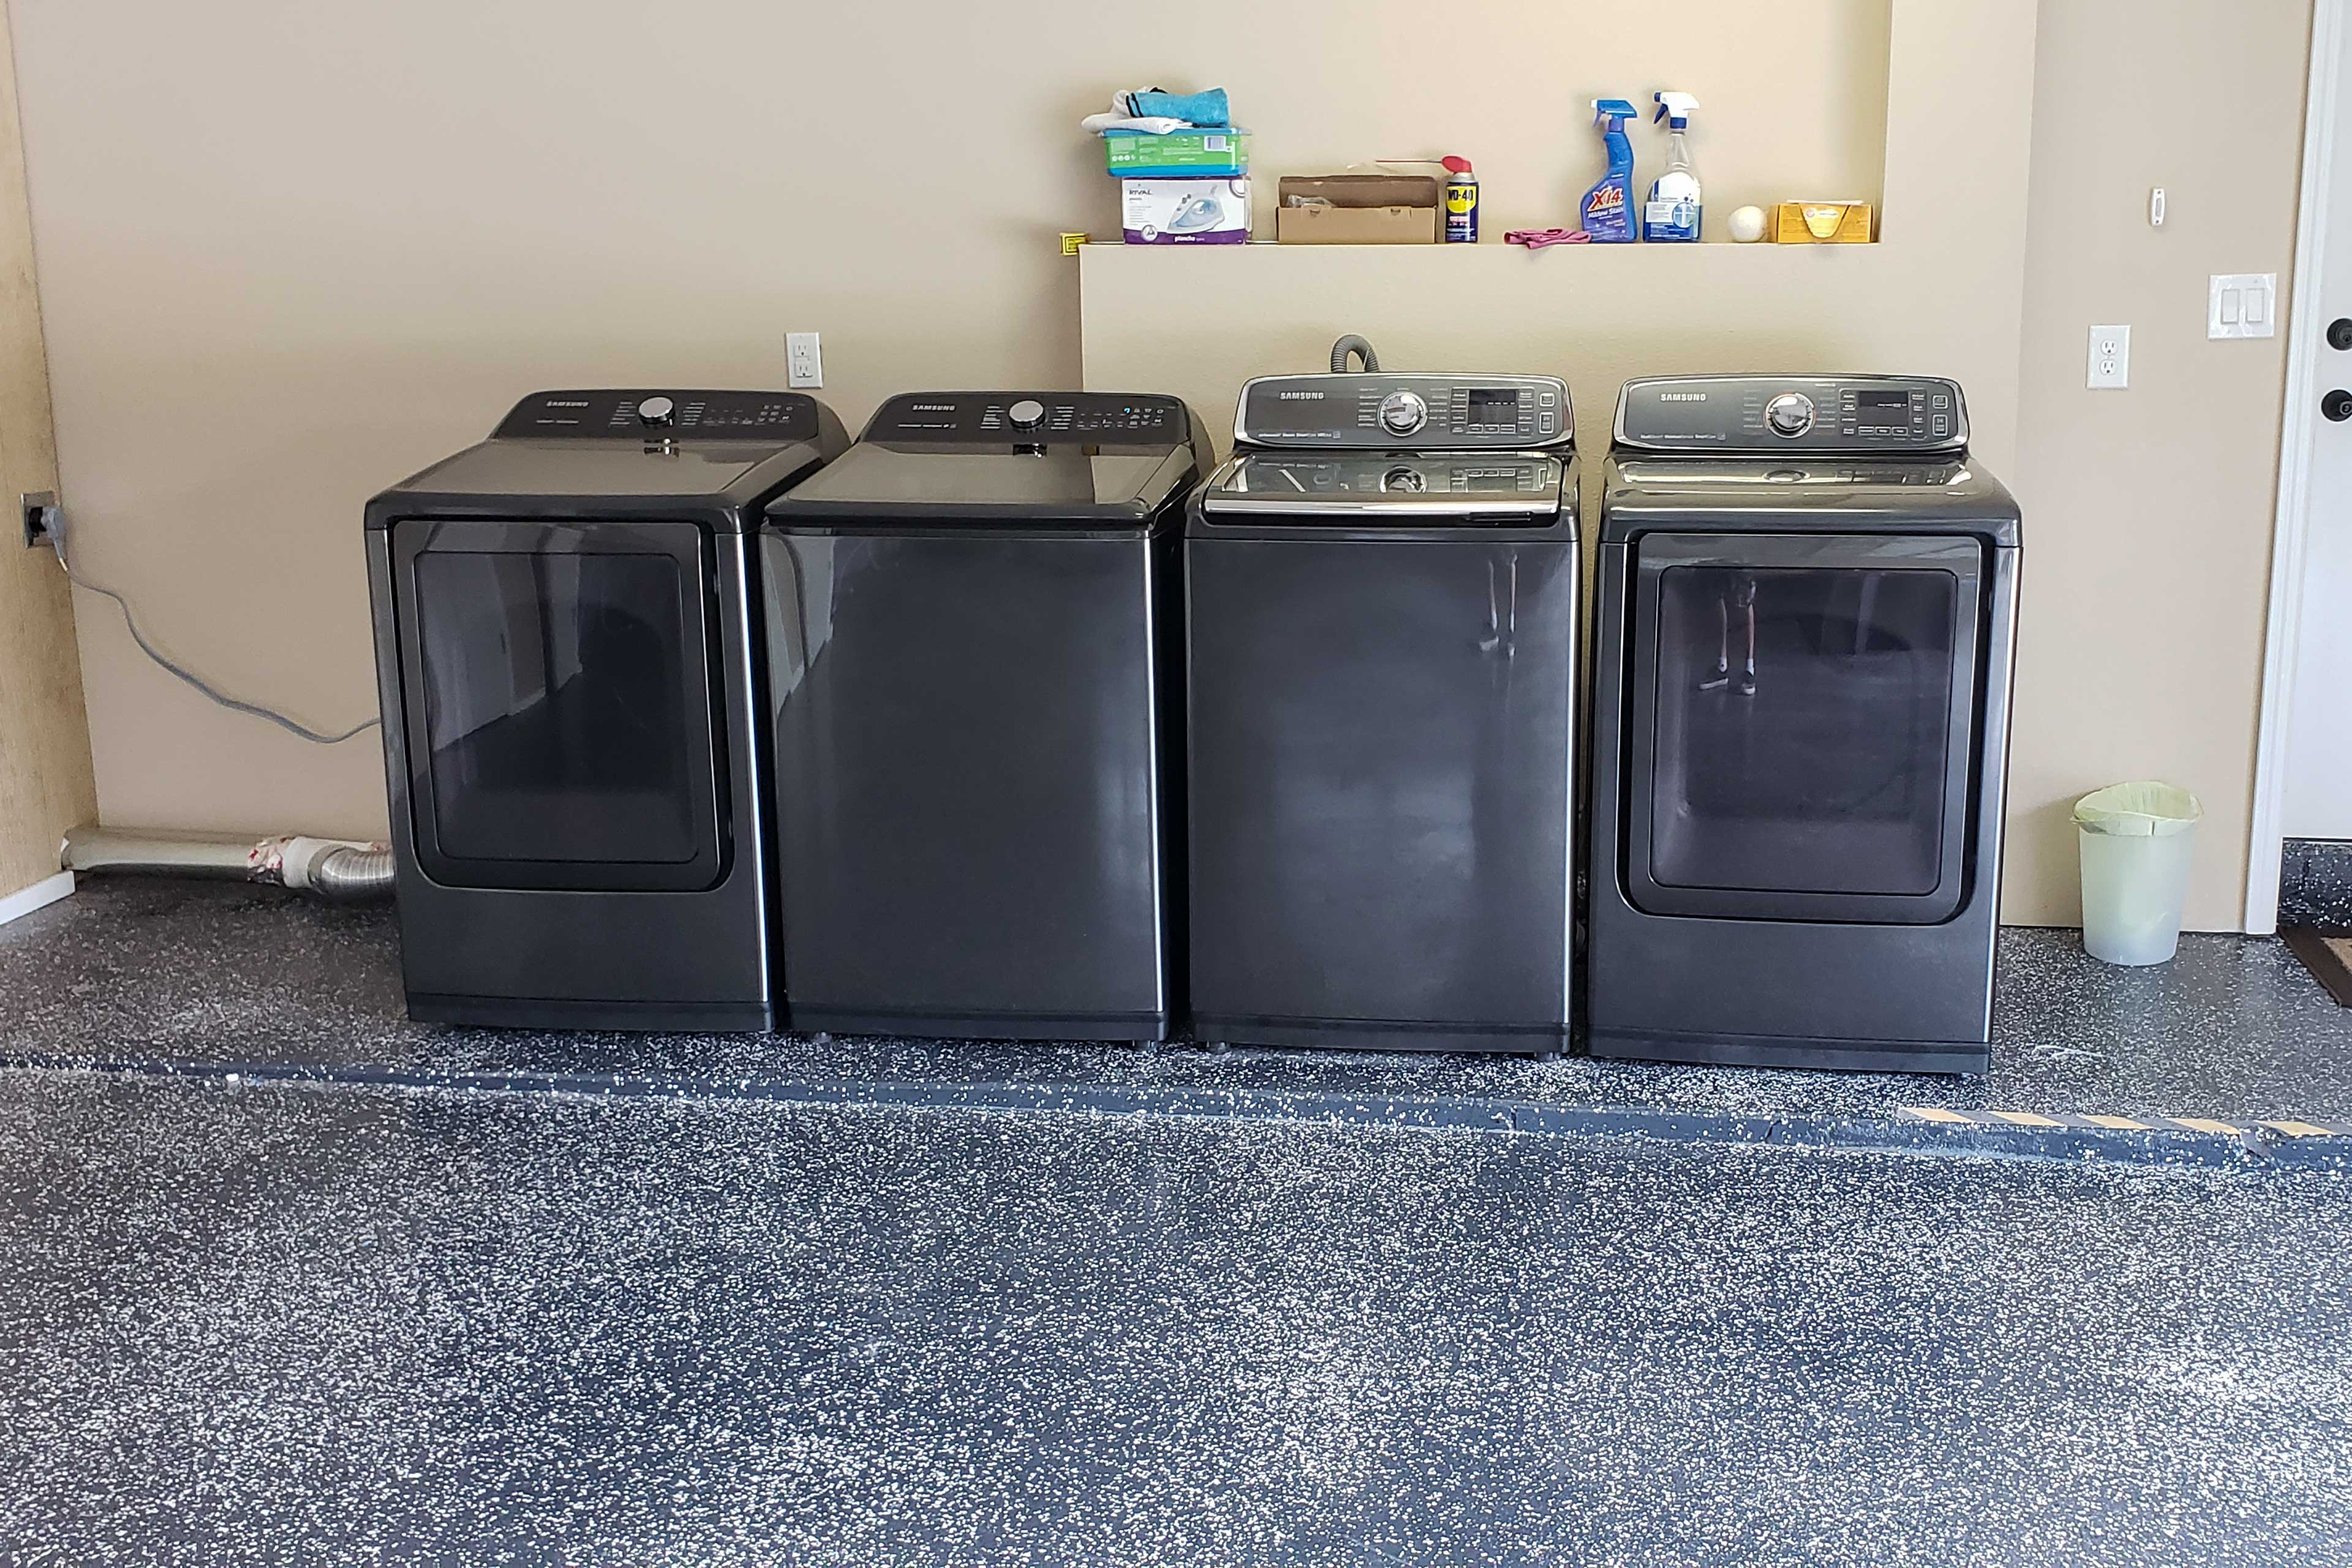 The house boasts 2 new washers and 2 dryers!